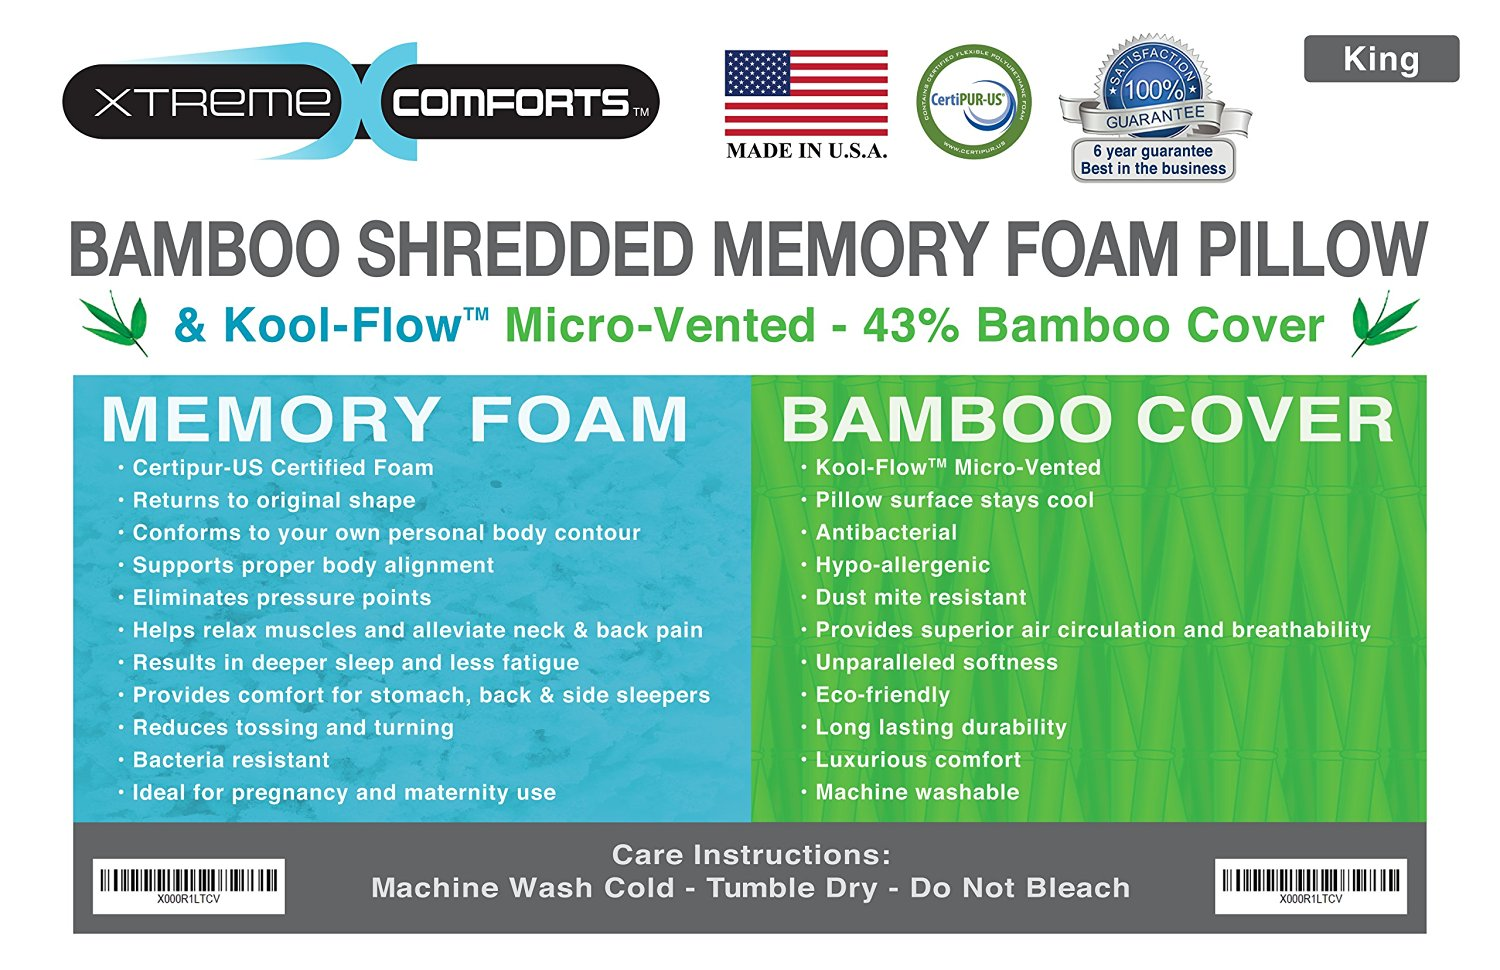 xtreme comforts hypoallergenic shredded memory foam pillow with kool flow bamboo cover machine washable